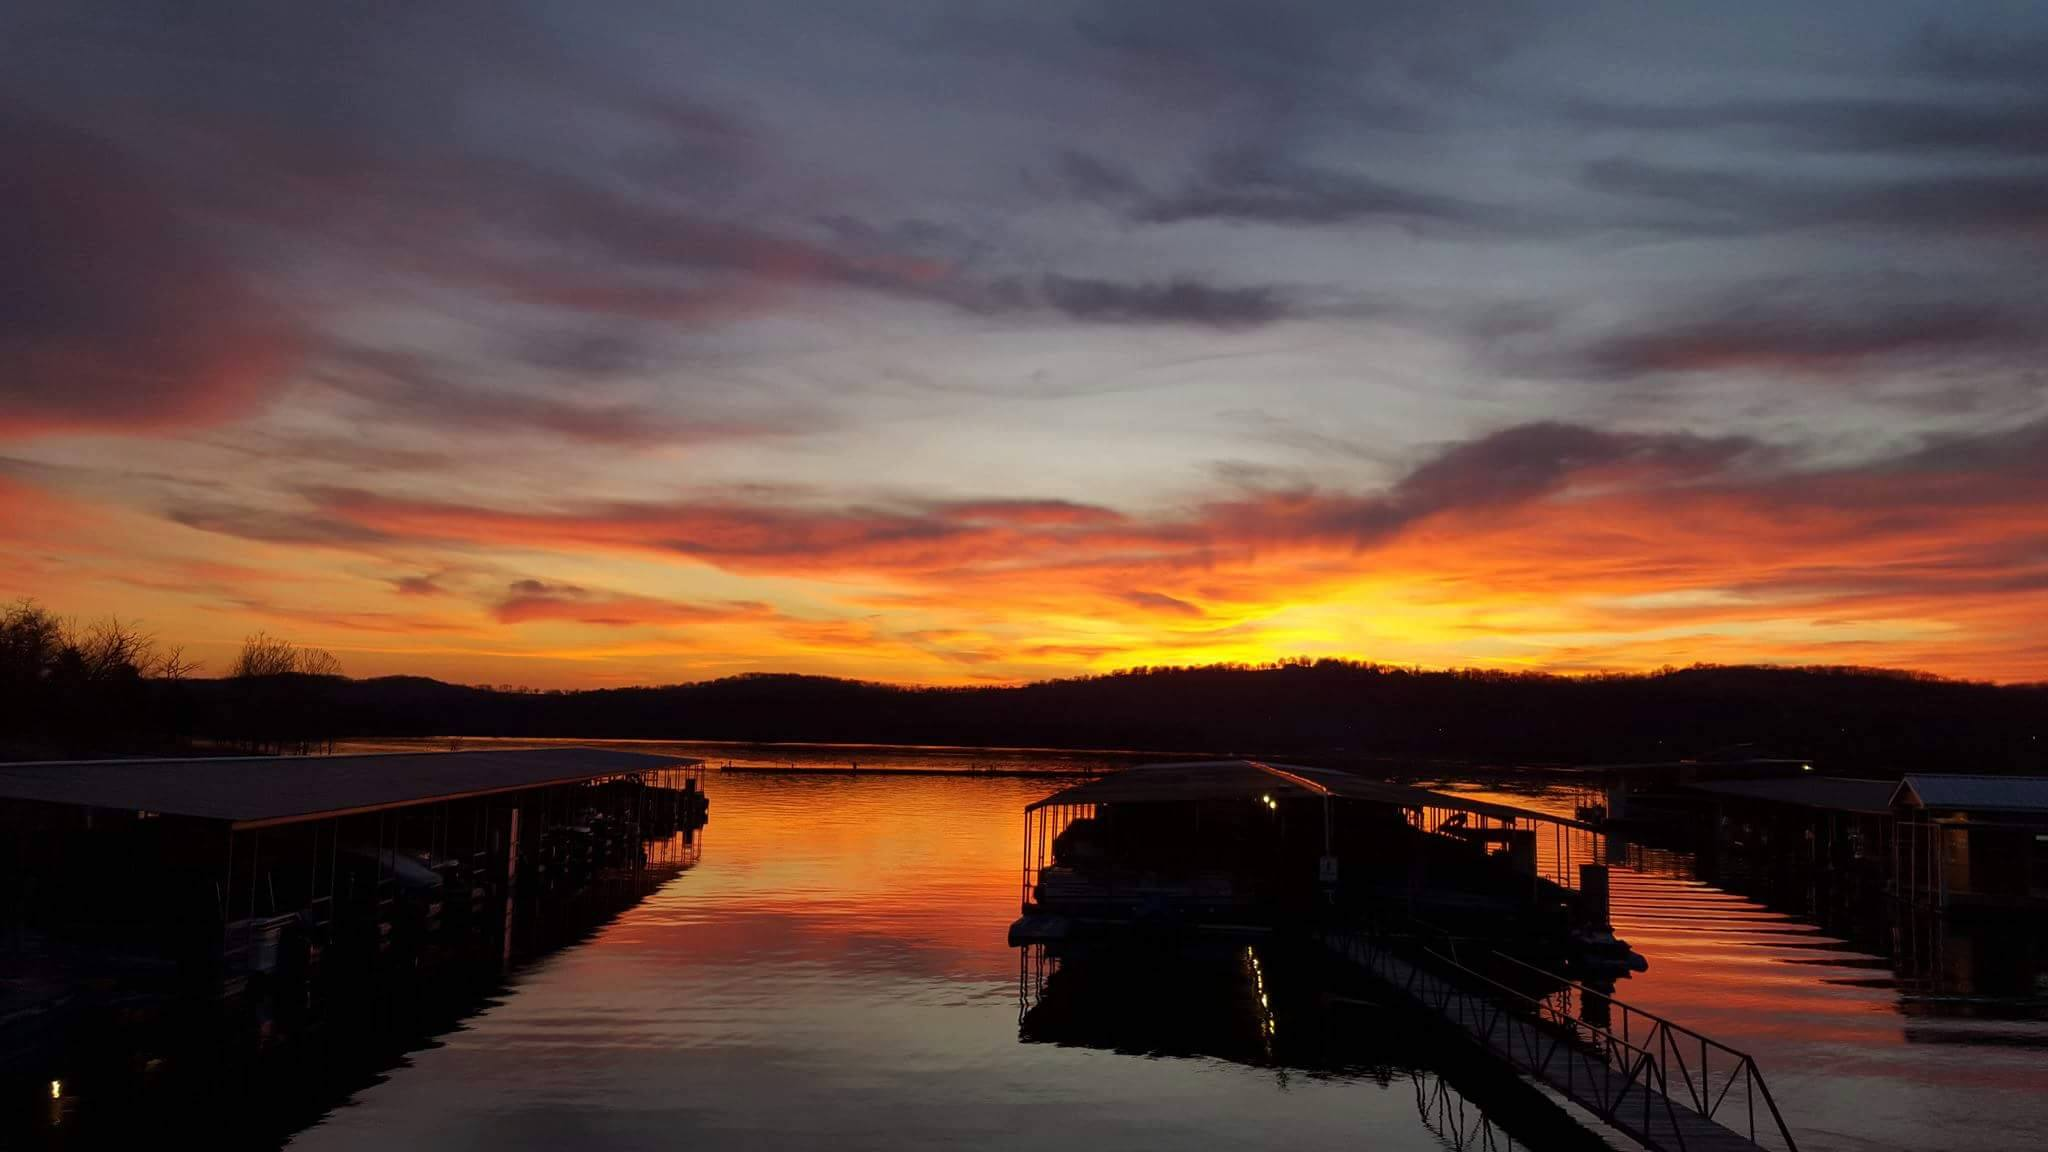 The sunset over Indian Point Marina in Branson, Missouri